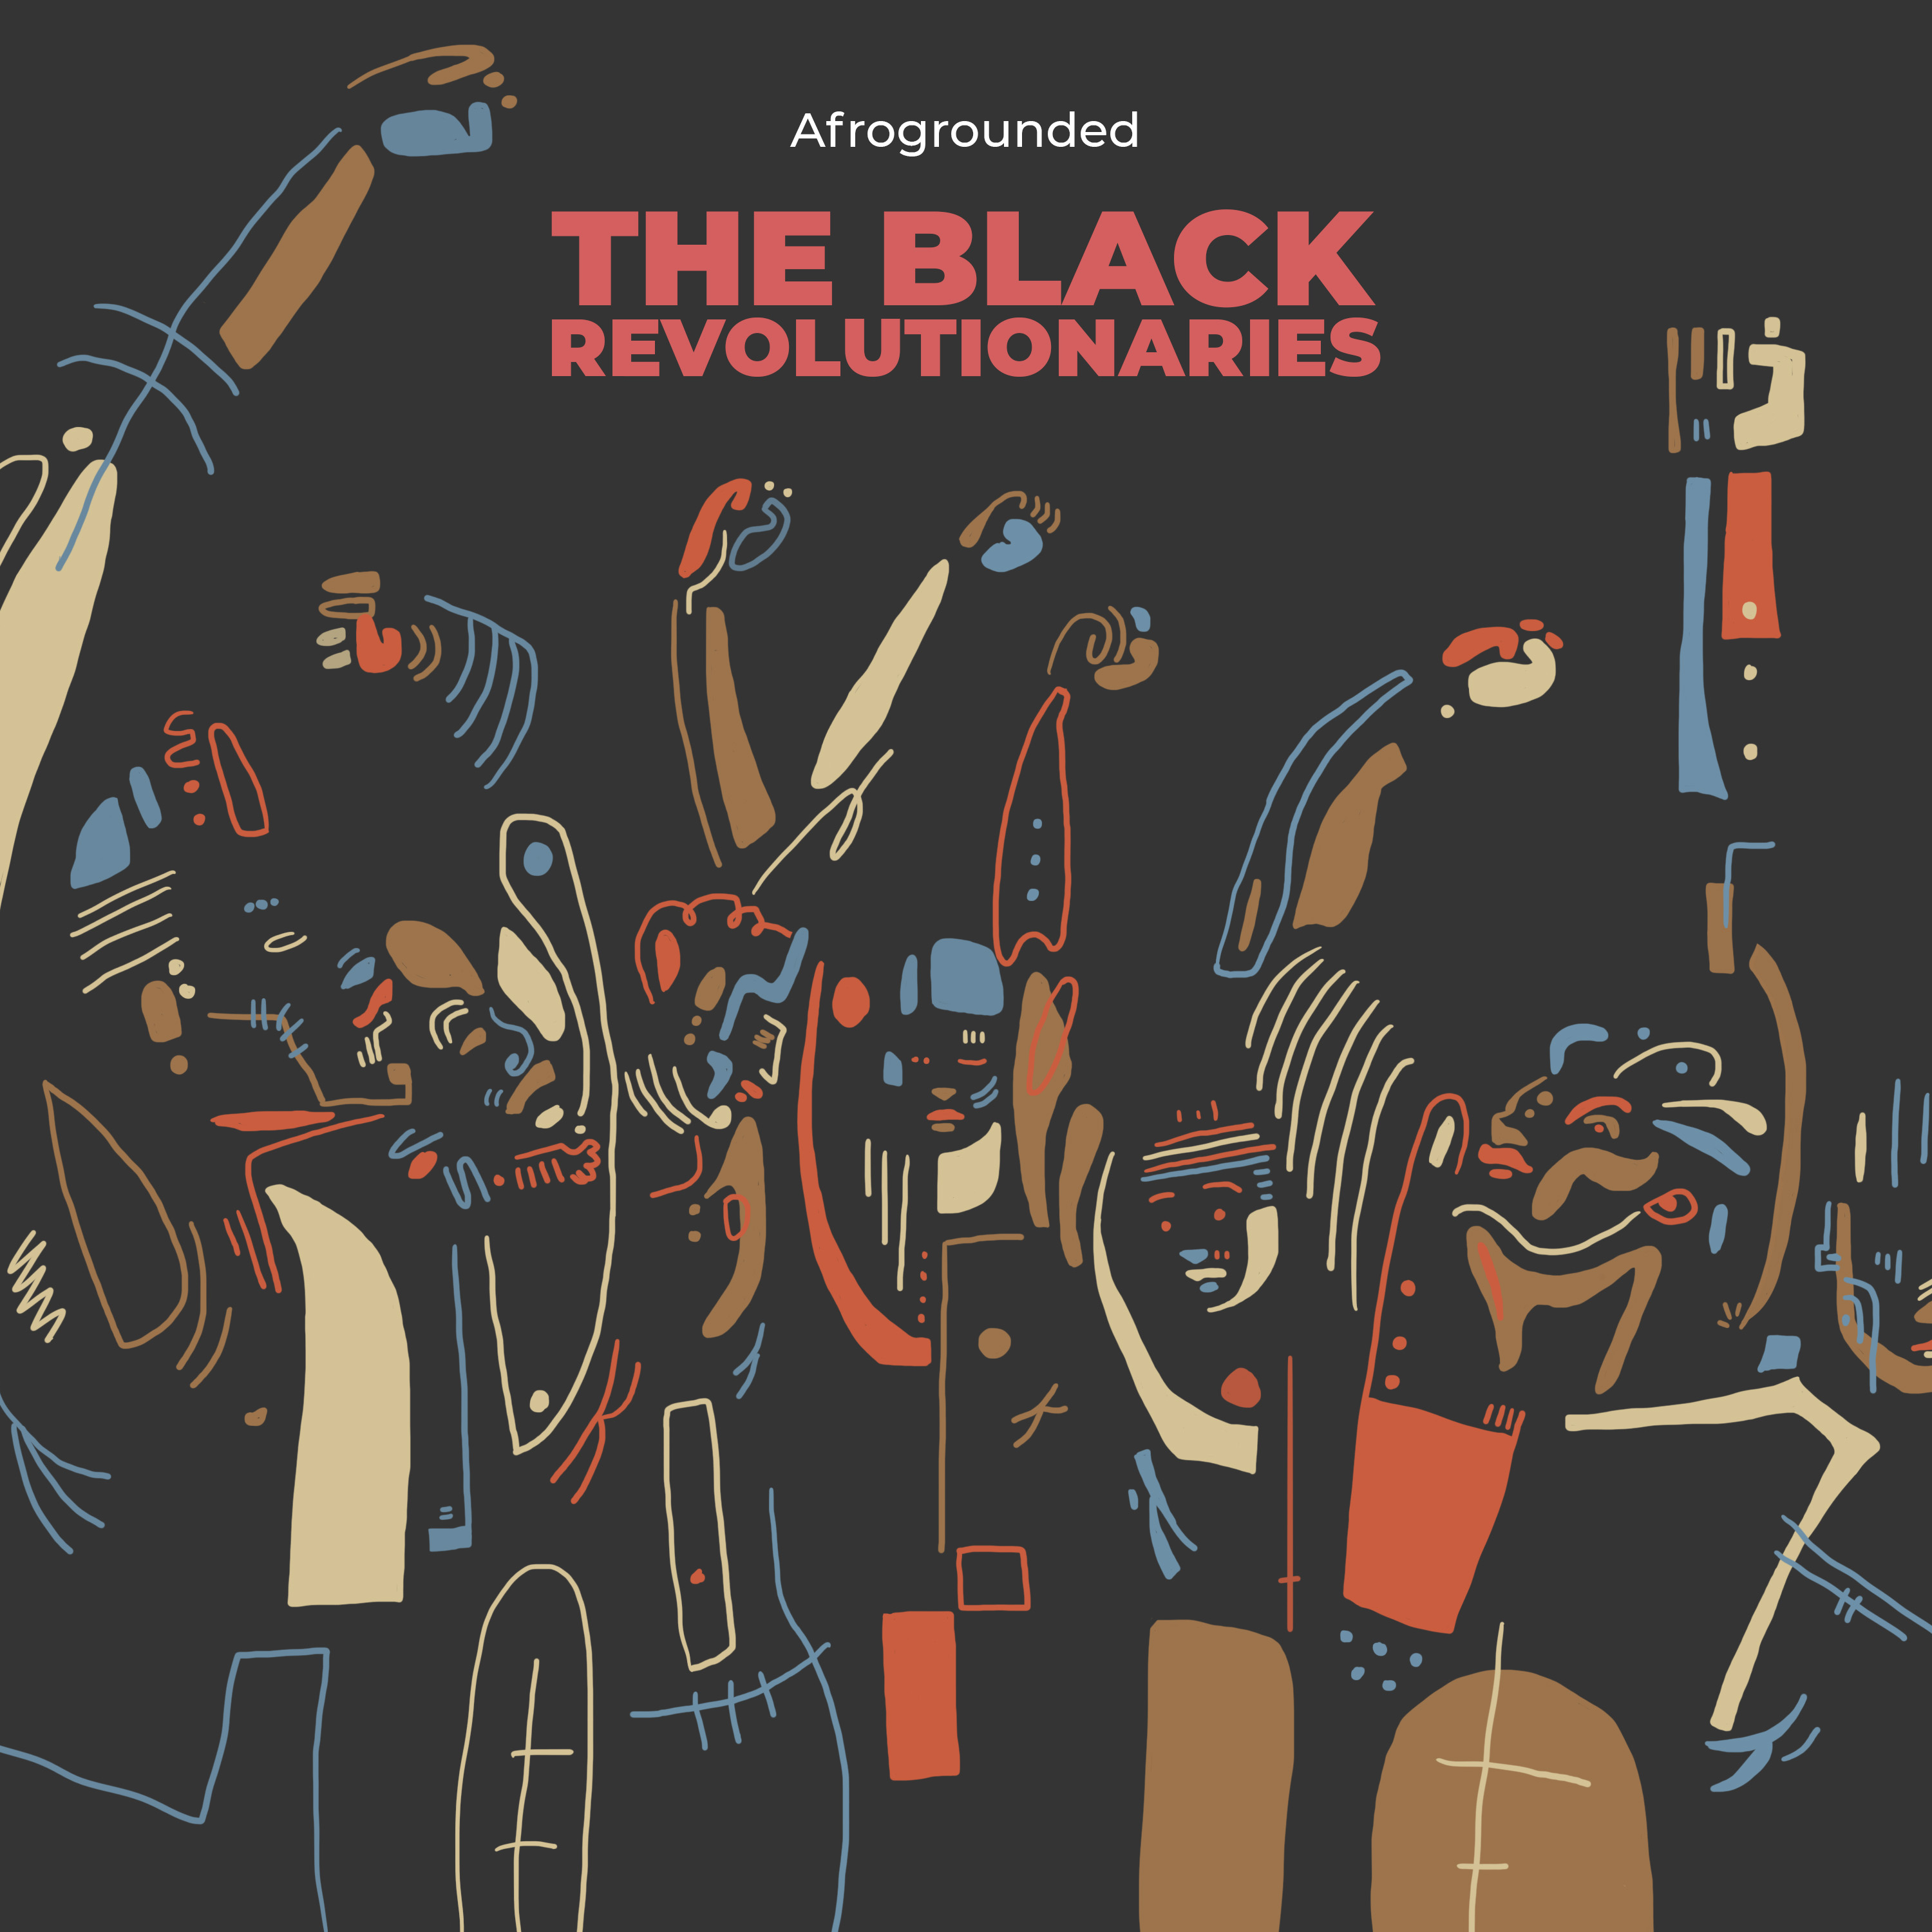 The Black Revolutionaries